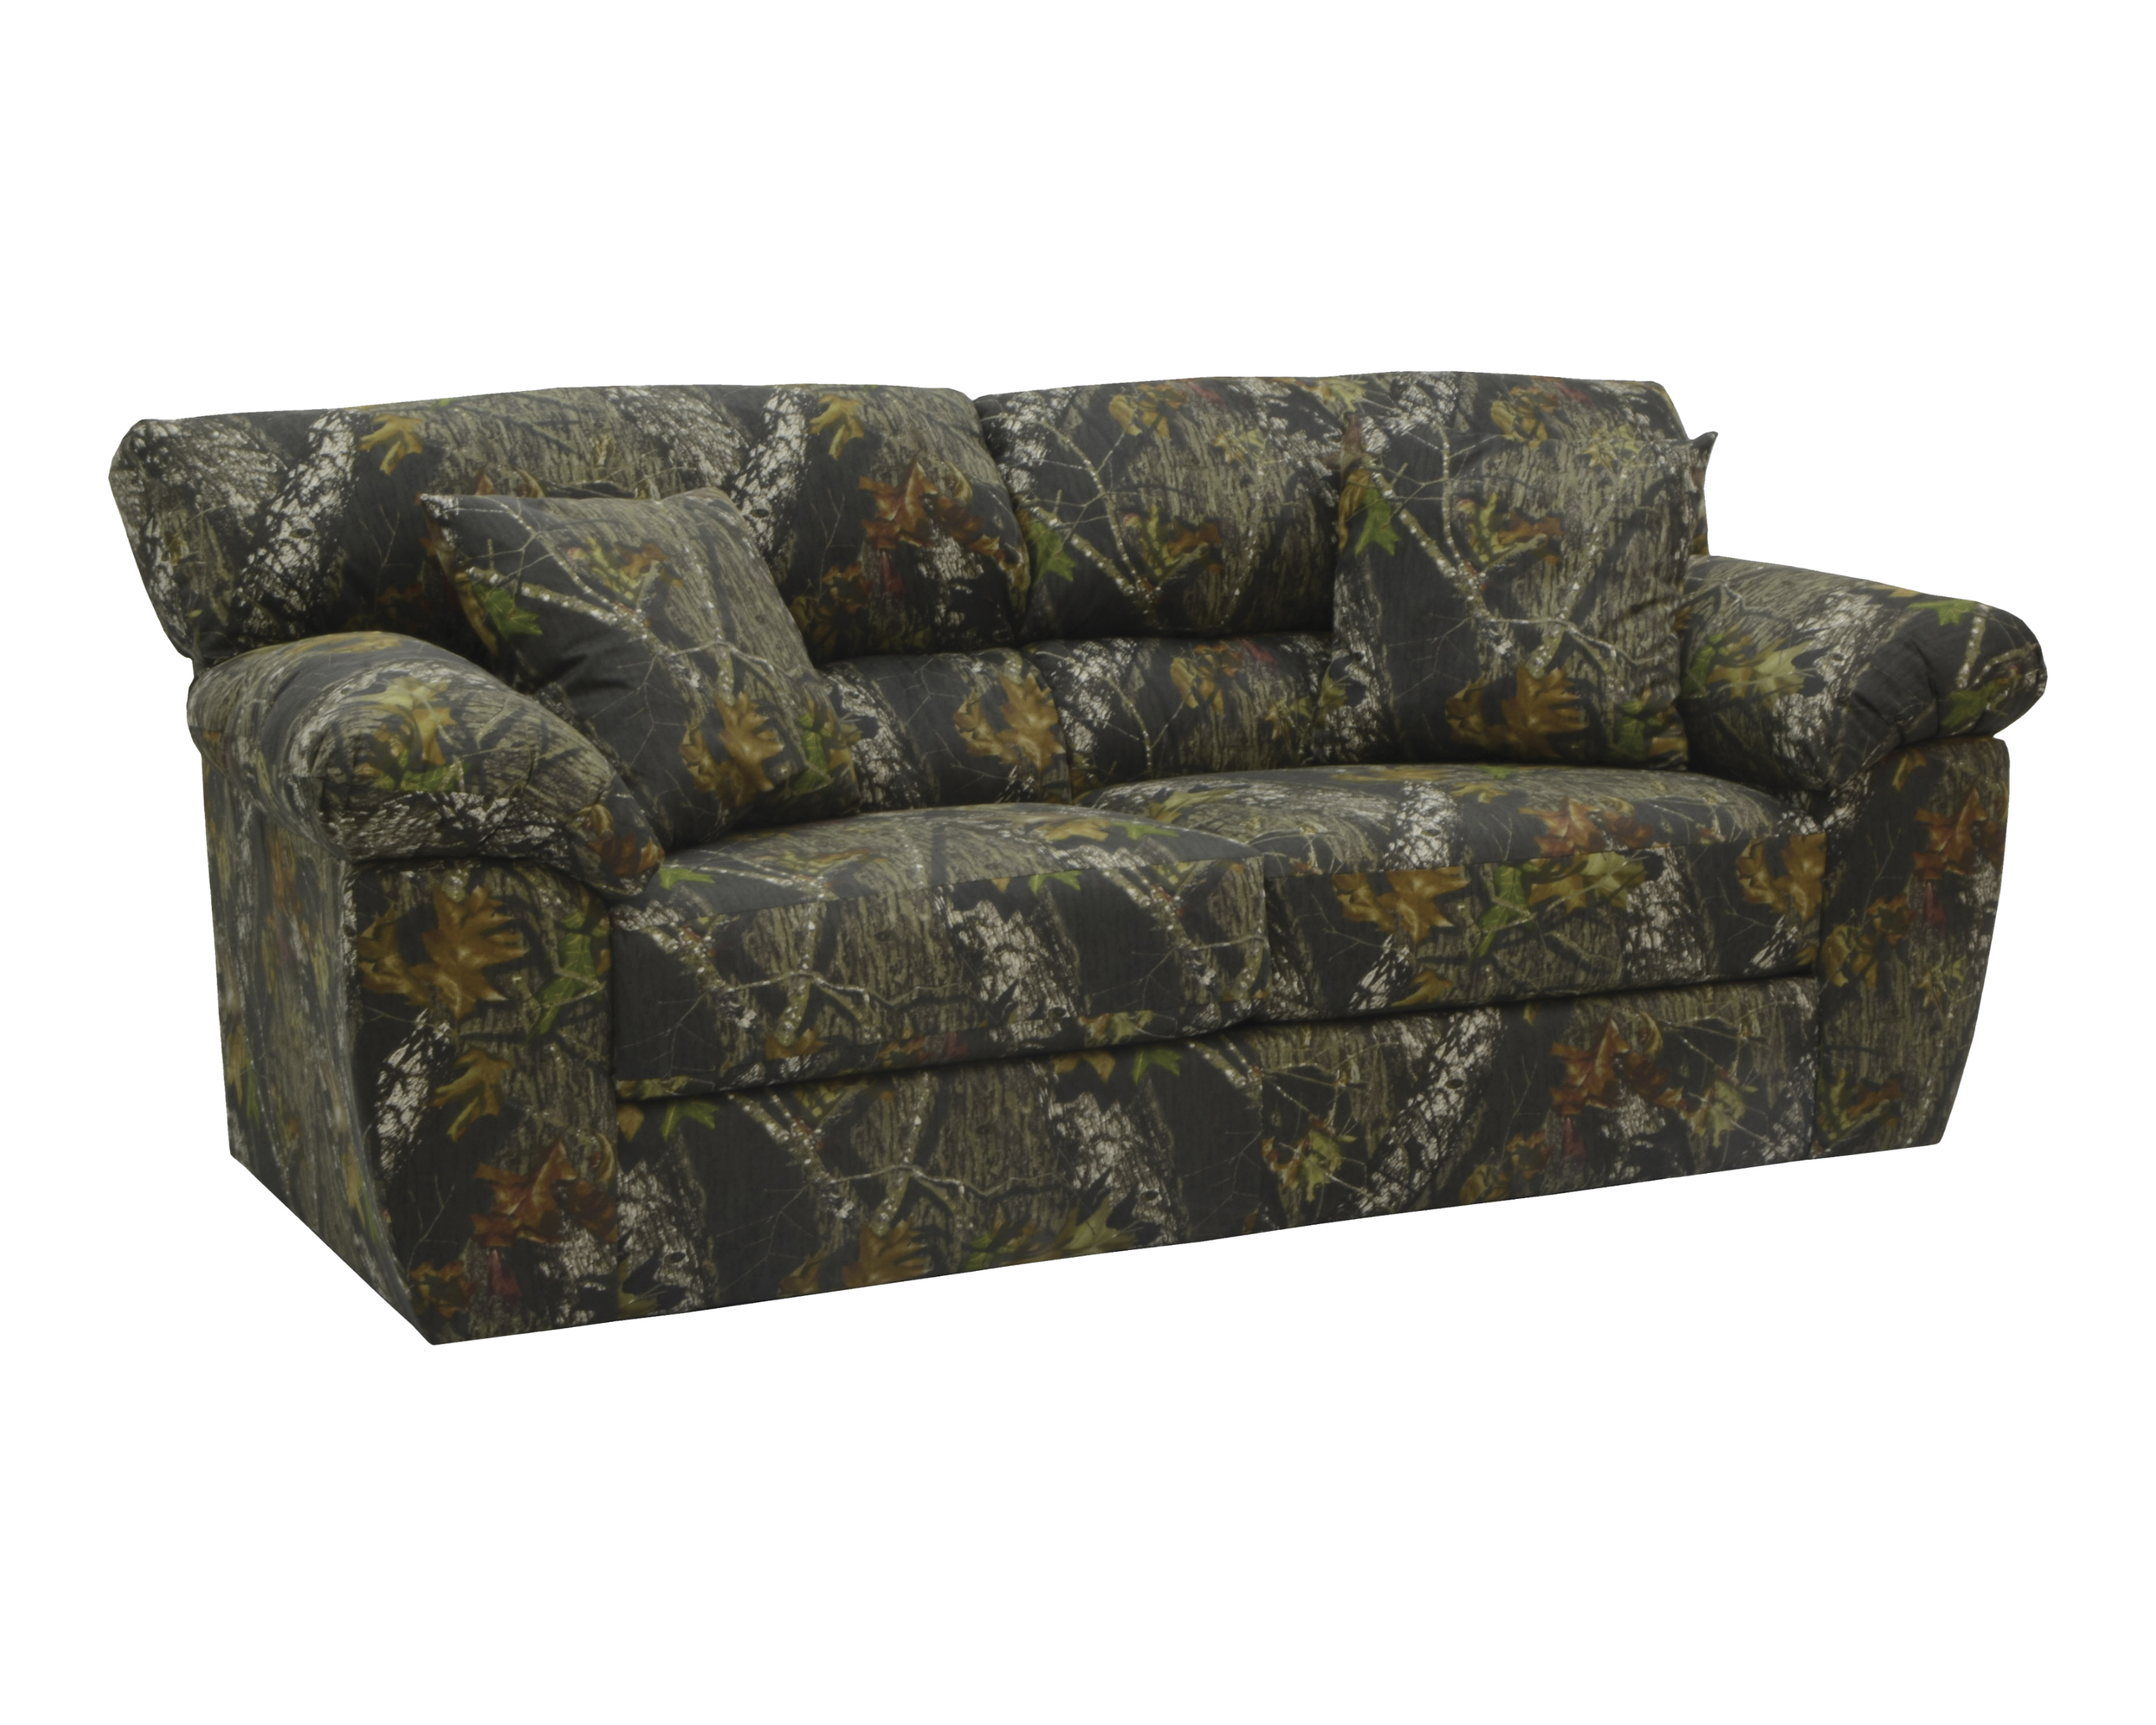 Camo Sofa Jackson Furniture Mossy Oak Camo Sofa And Loveseat Set Thesofa